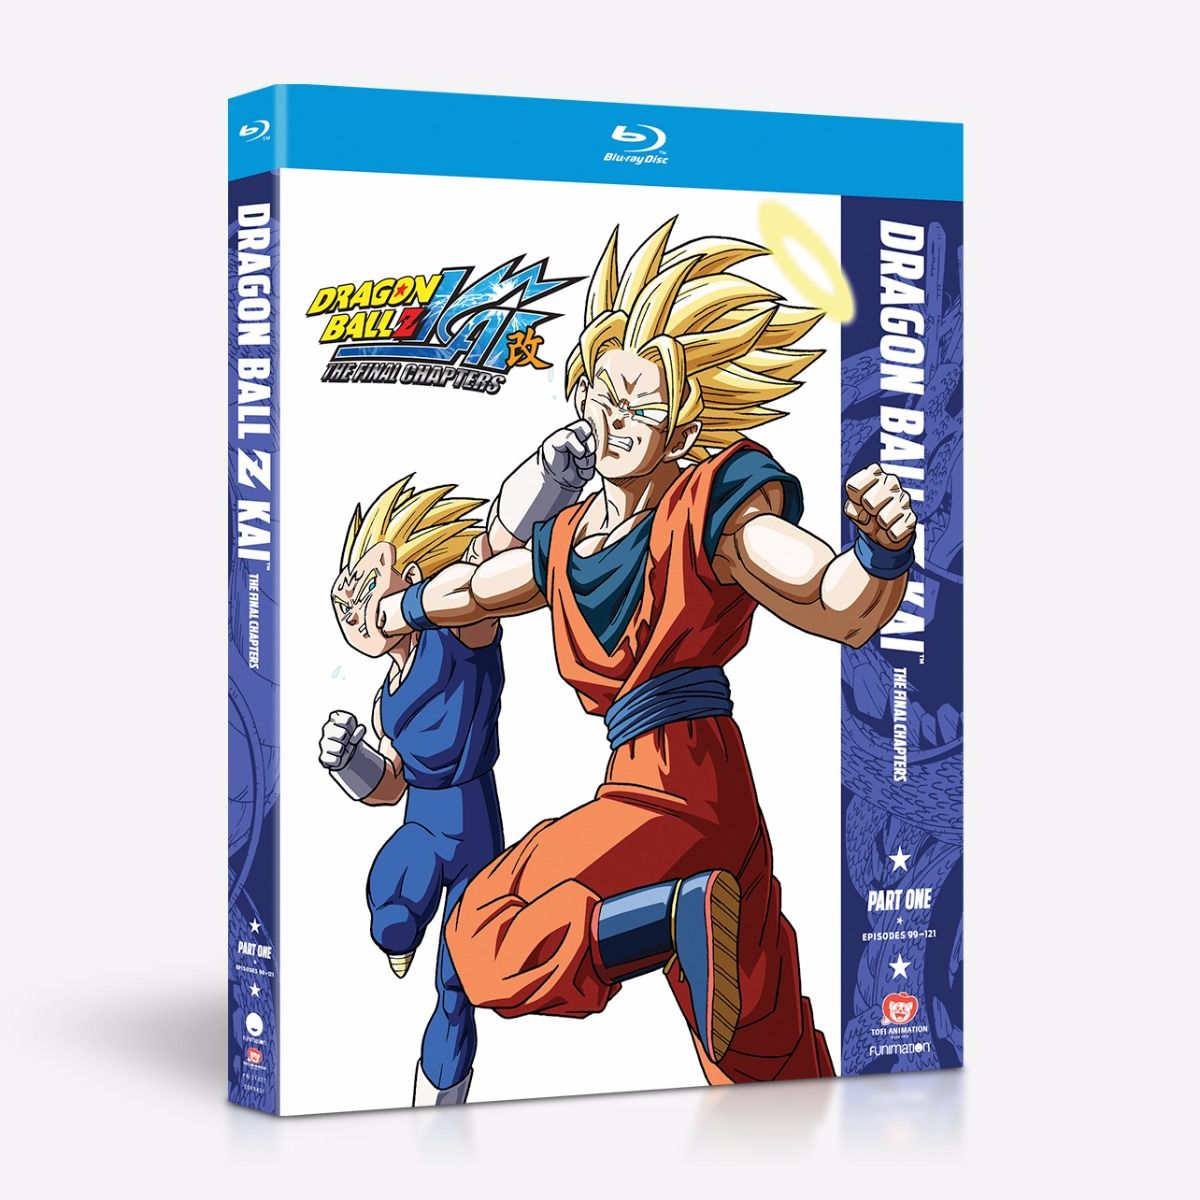 dragon ball z kai season 1 torrent